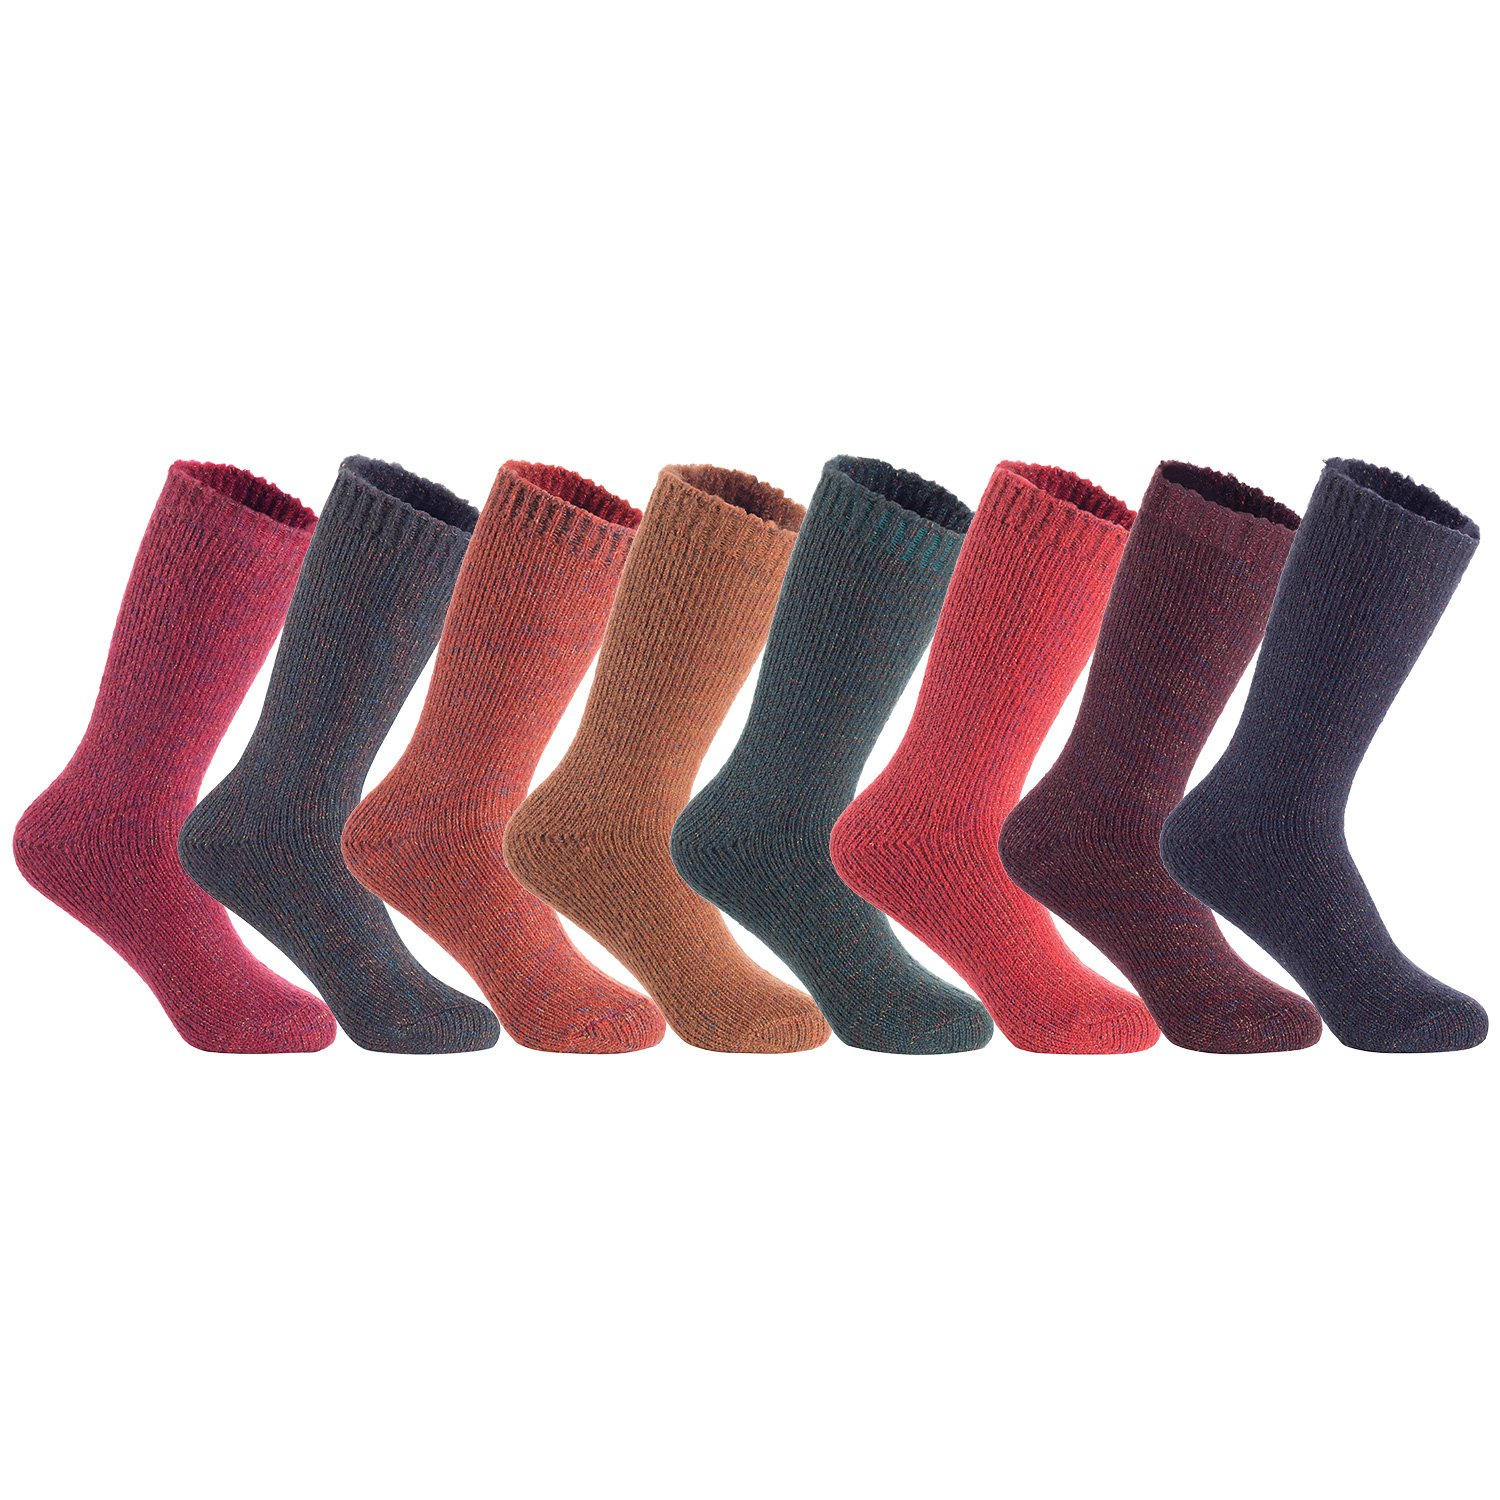 Lian LifeStyle Big Girl's Women's 5 Pairs Pack Soft Wool Acrylic Blend Hiker Crew Socks HR1414 Size 6-9 or XL(5 Colors)